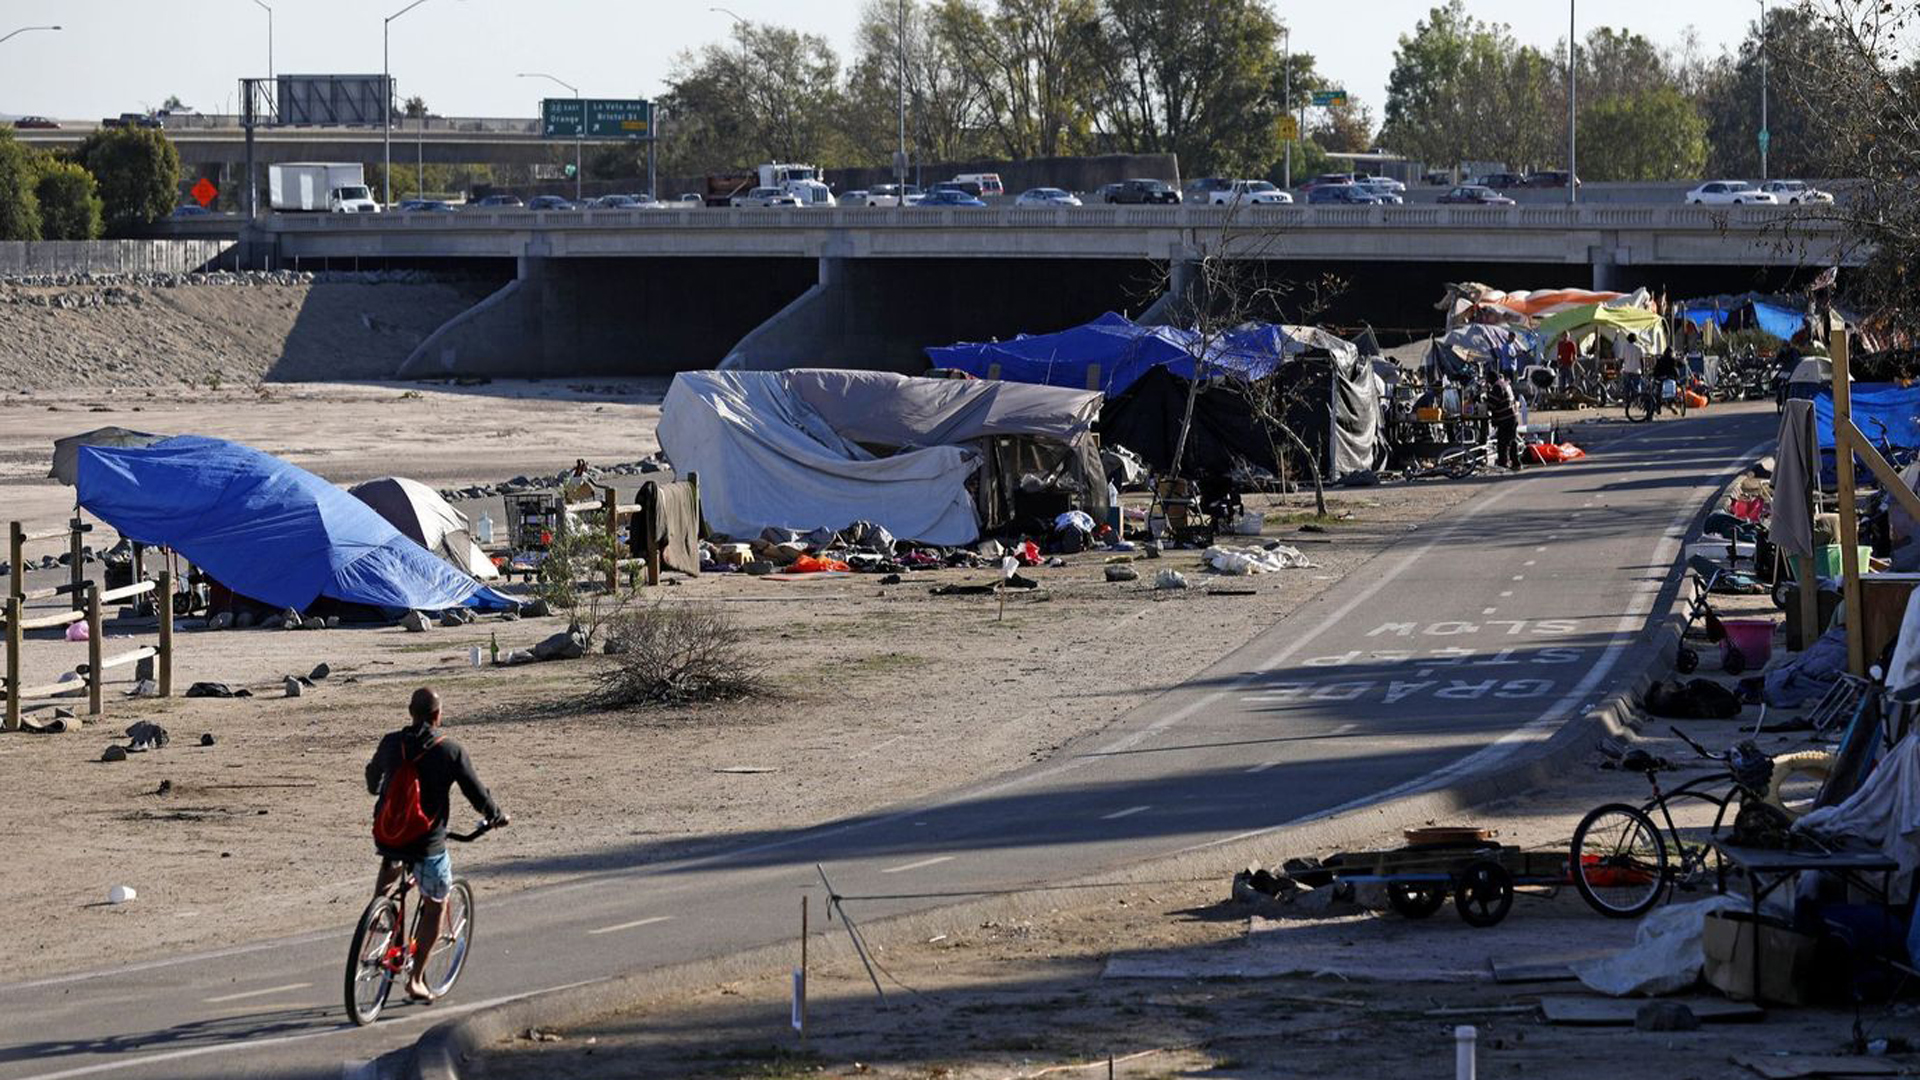 A homeless encampment along the Santa Ana River in Anaheim. Earlier this year, a federal judge ordered the encampment to be cleared. (Credit: Gary Coronado / Los Angeles Times)